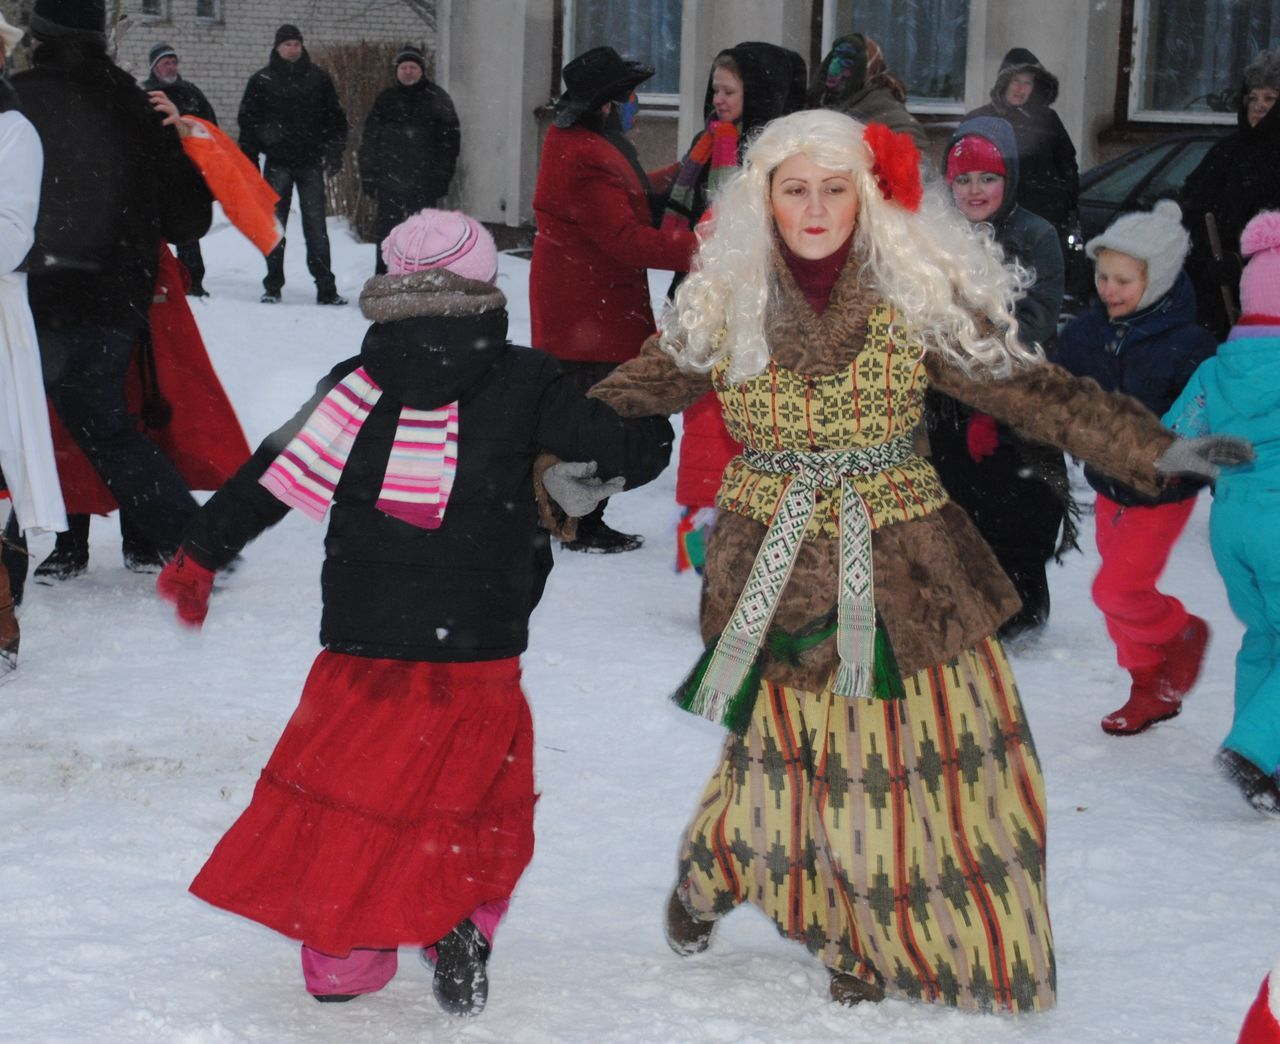 real people, celebration, leisure activity, street, fun, lifestyles, enjoyment, full length, dancing, winter, women, performance, snow, arts culture and entertainment, togetherness, architecture, happiness, outdoors, day, men, warm clothing, adult, people